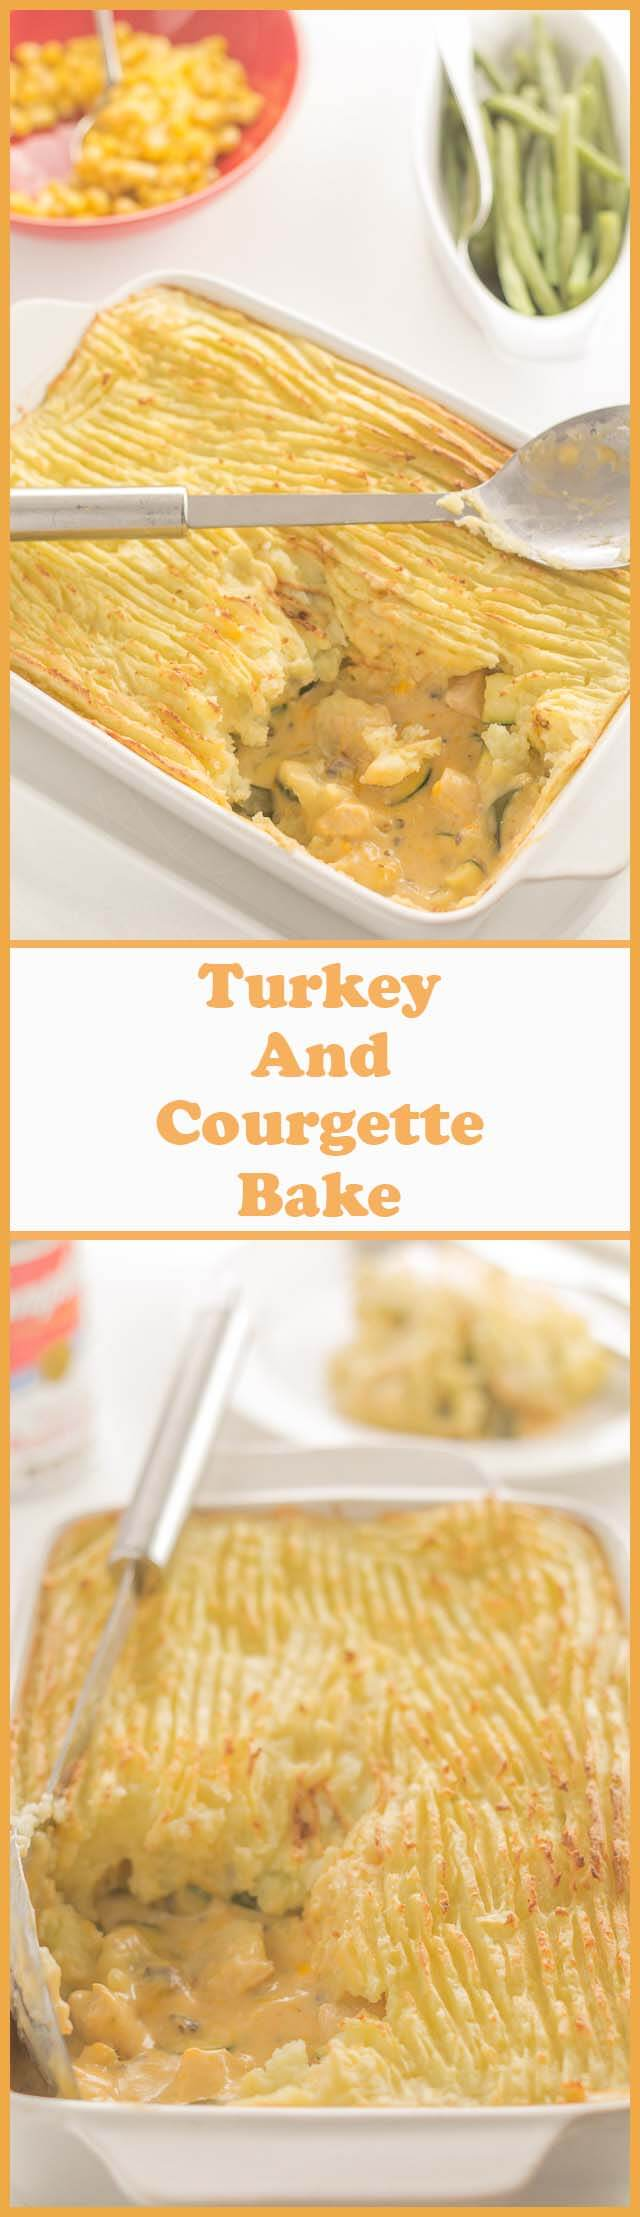 This turkey and courgette bake is the perfect weeknight dinner for when you're short of time. Healthy and filling with a creamy sauce inside topped with delicious mashed potato, and it's low cost too!